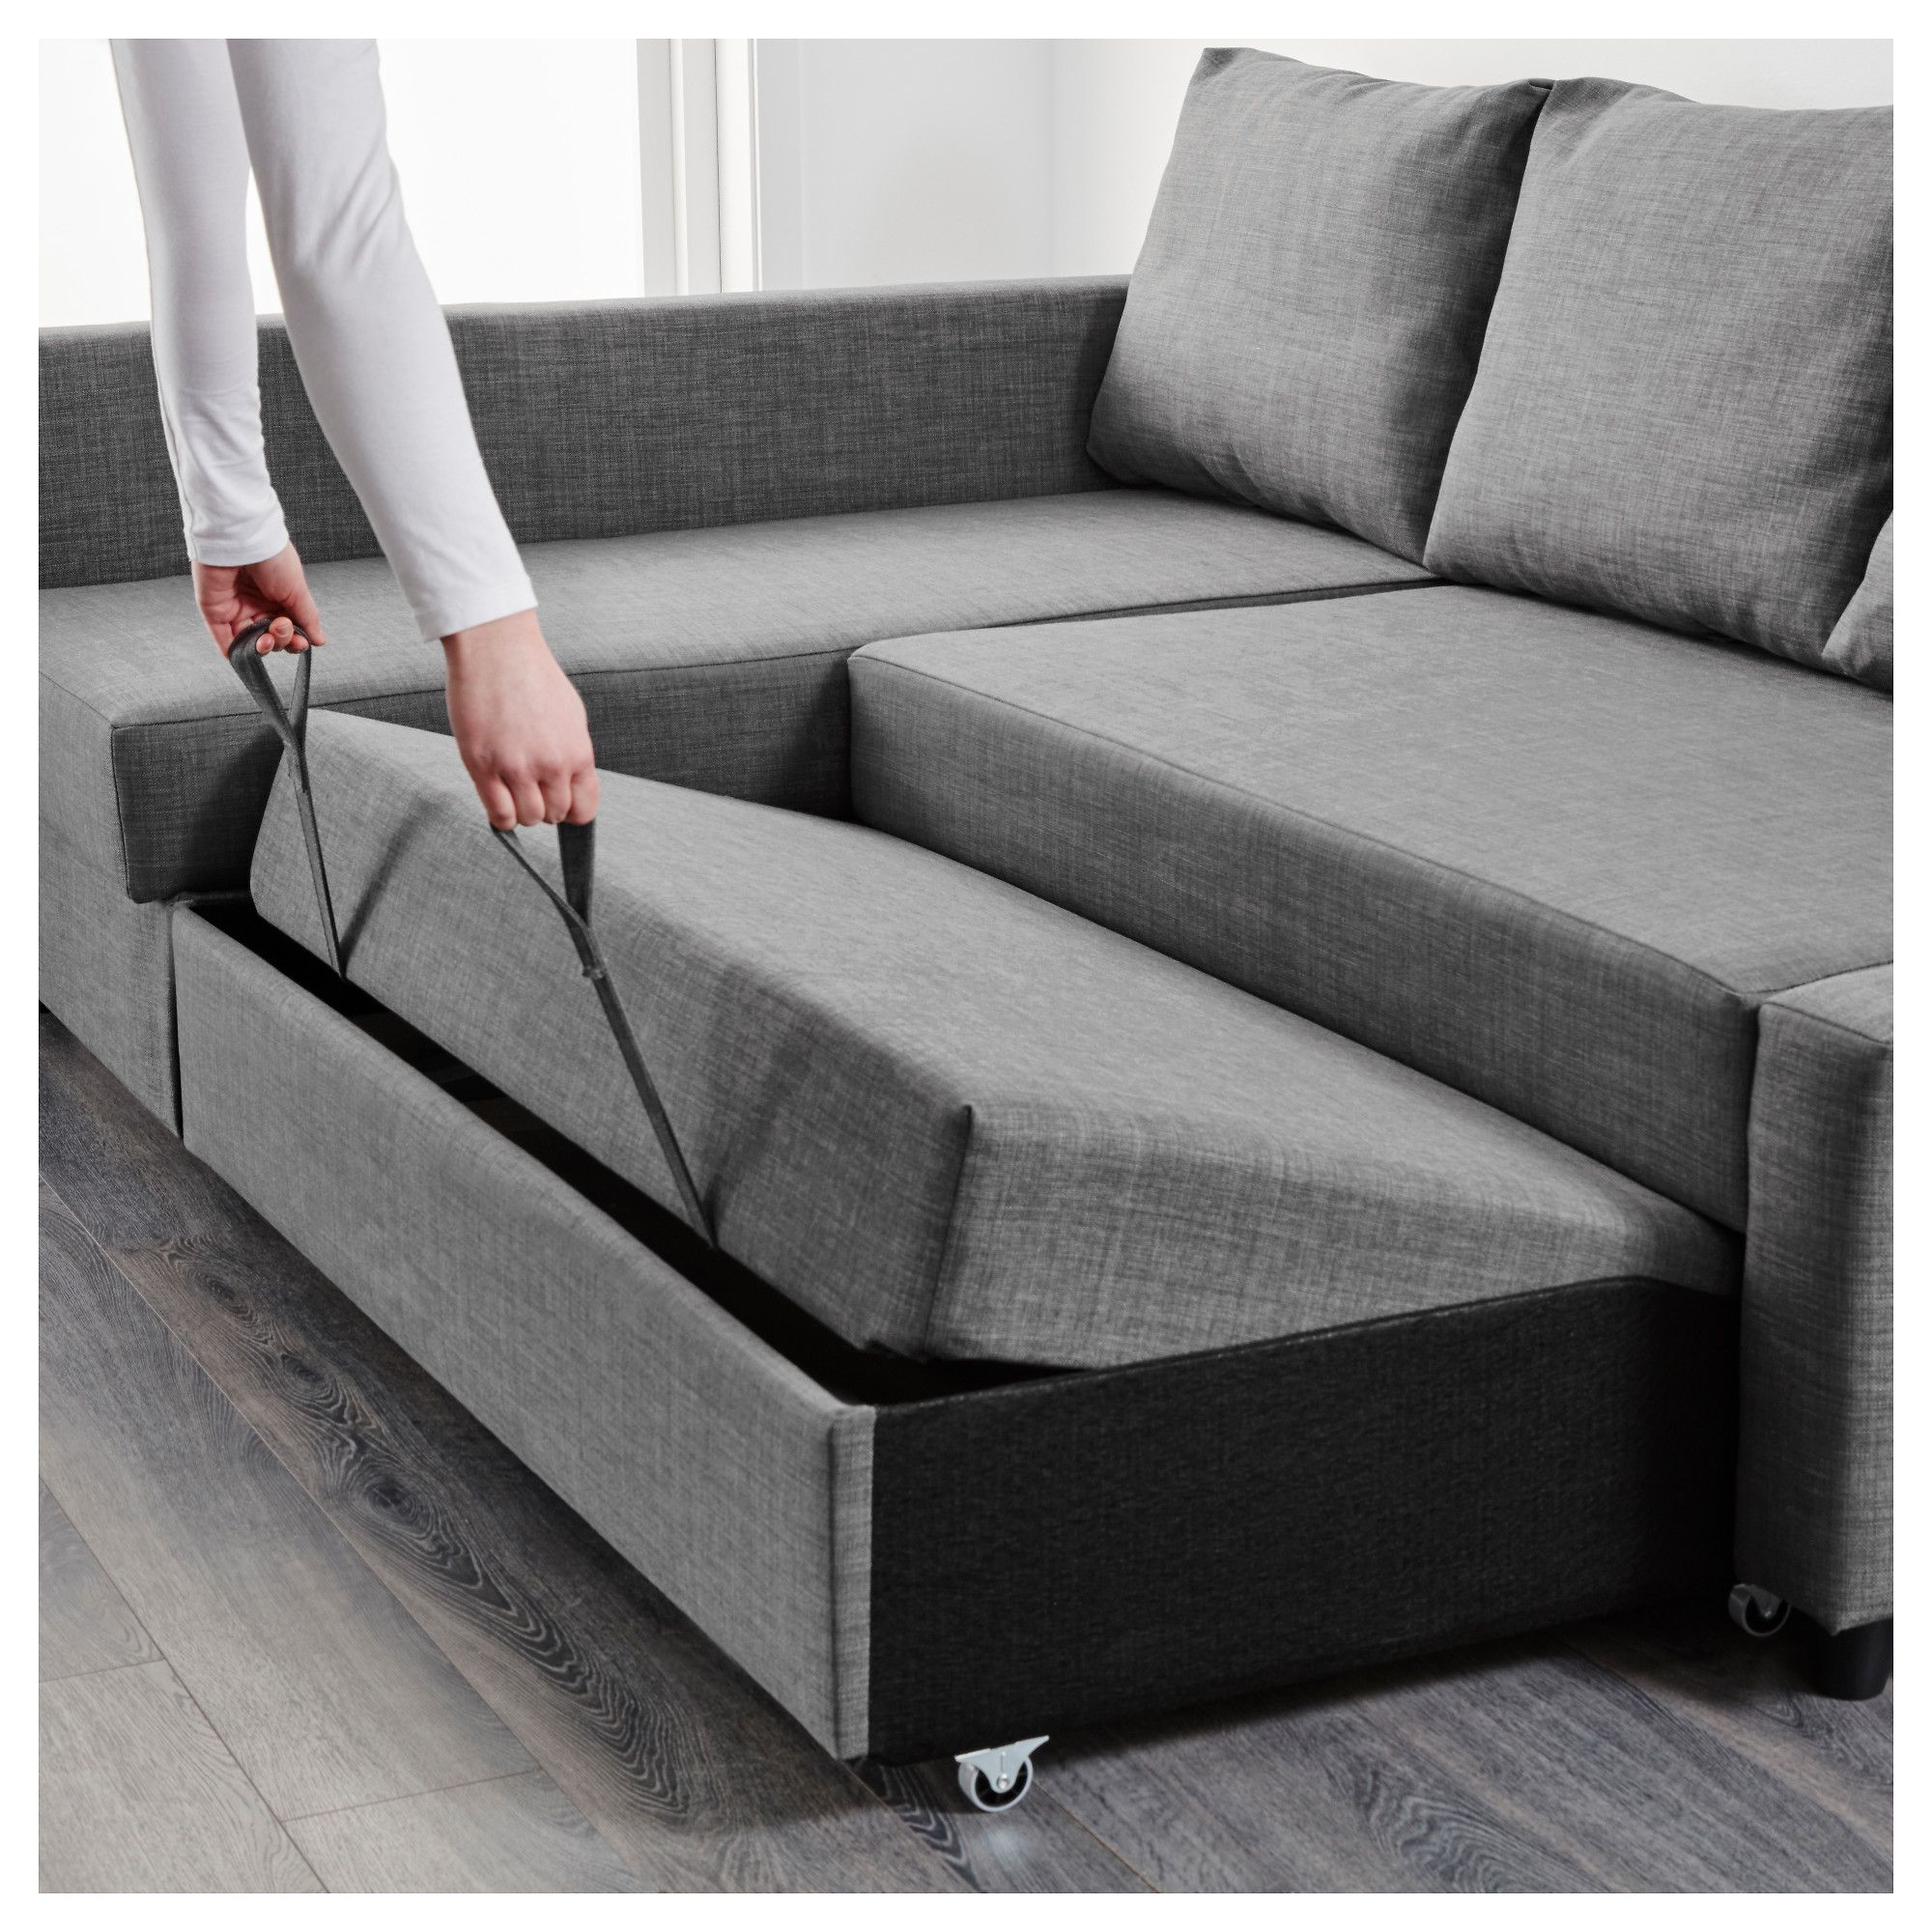 Ikea Couch Bett Trend Grey Corner Sofa Decor Inspiration Sofa Bed Sofa Corner Sofa